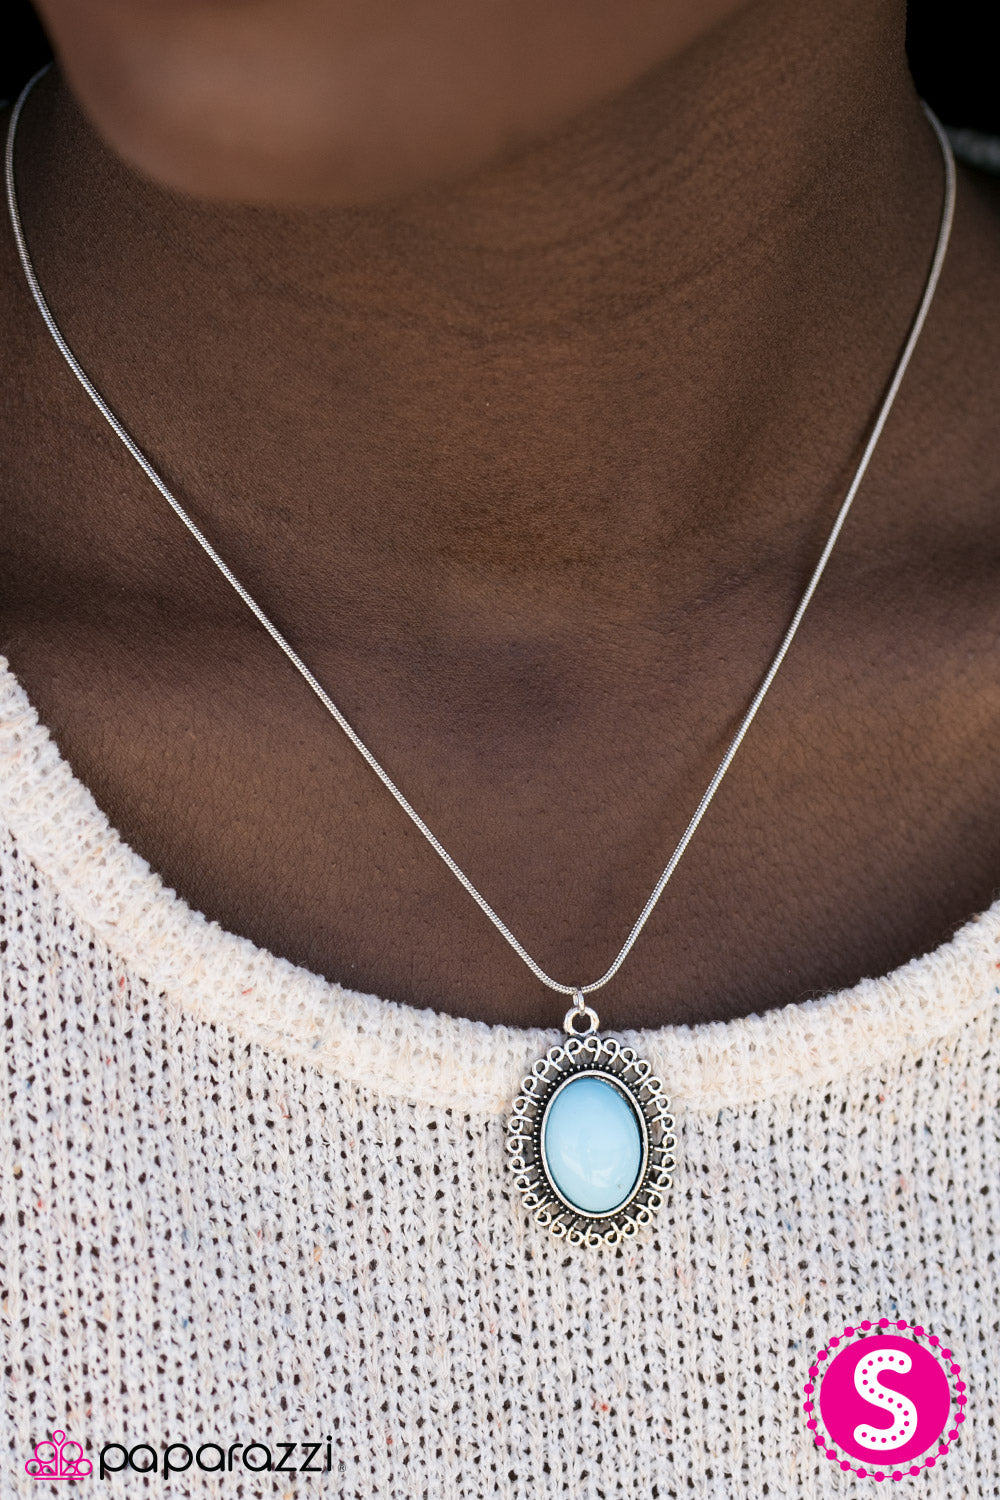 Western Plains - Blue - Paparazzi necklace